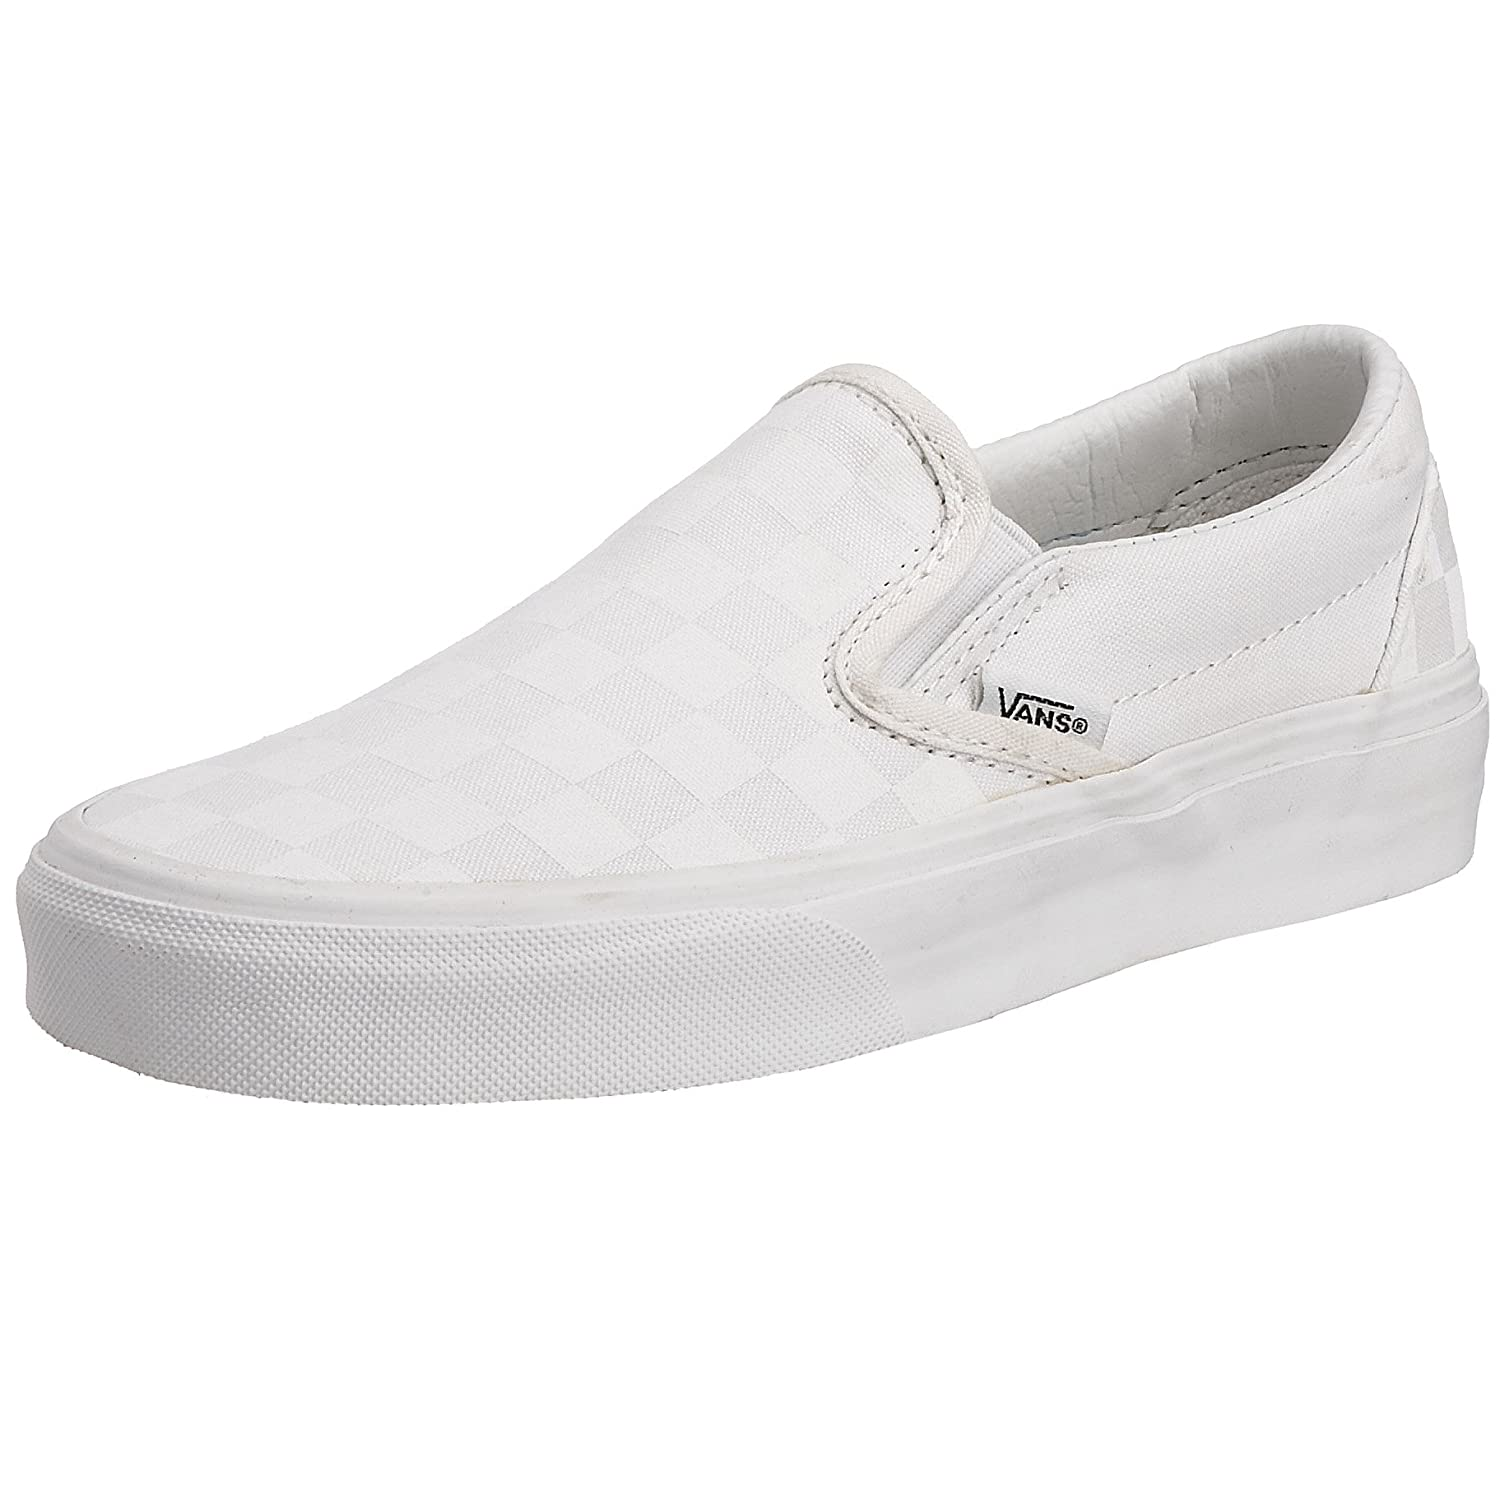 Vans Slip-on(Tm) Core Classics (Checkerboard) Truewhite/T